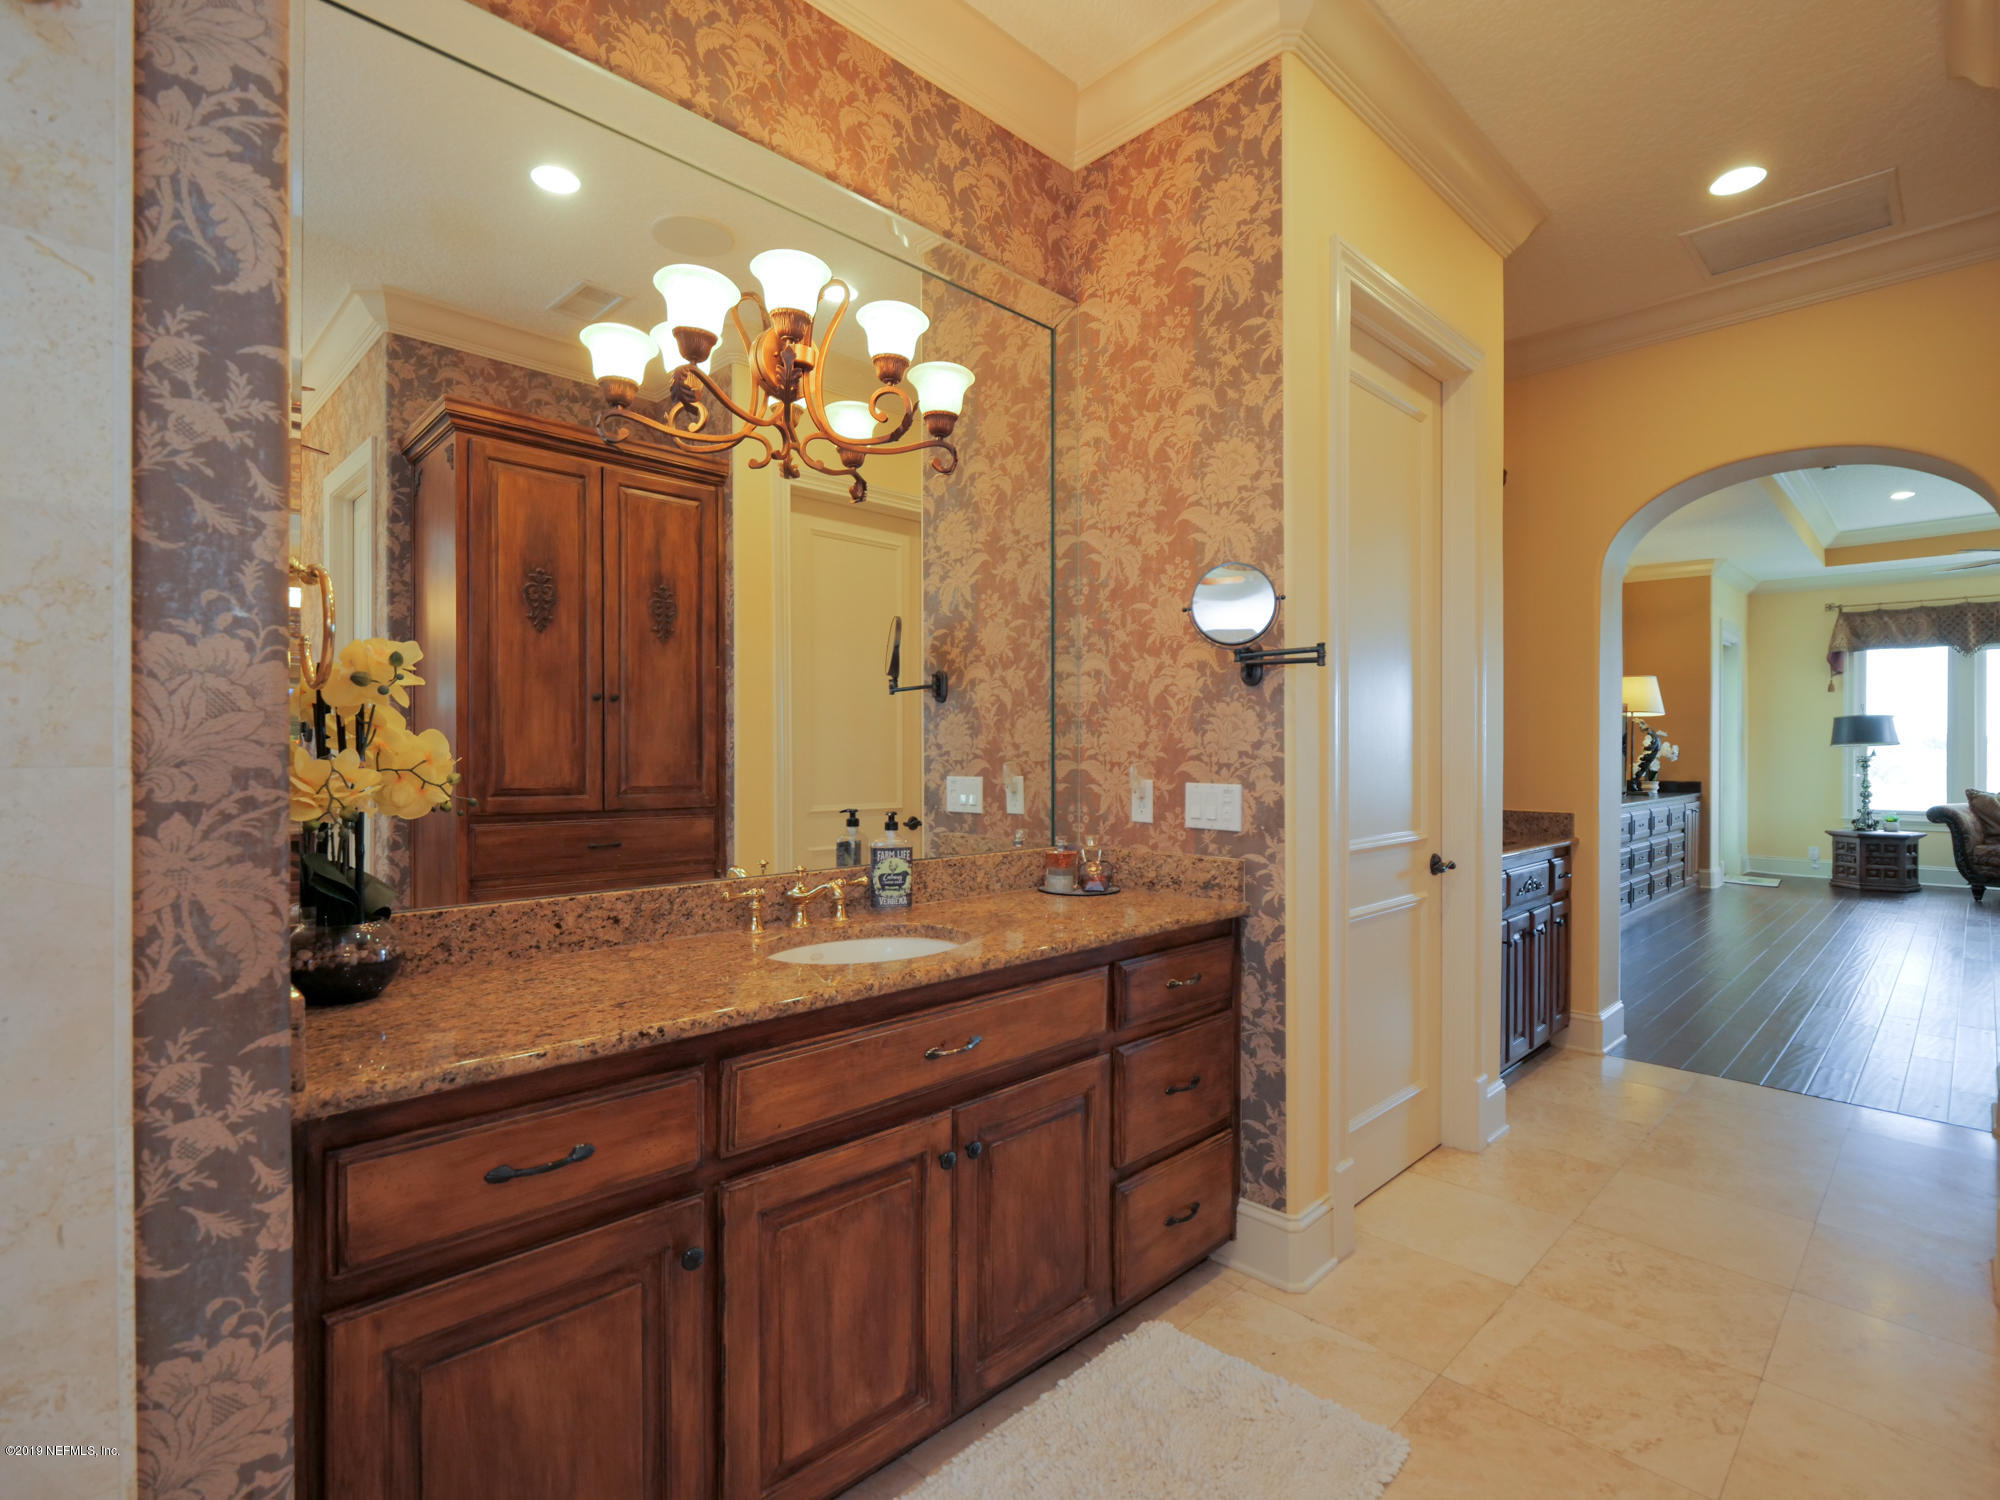 Image 46 of 89 For 1297 Delfino Dr